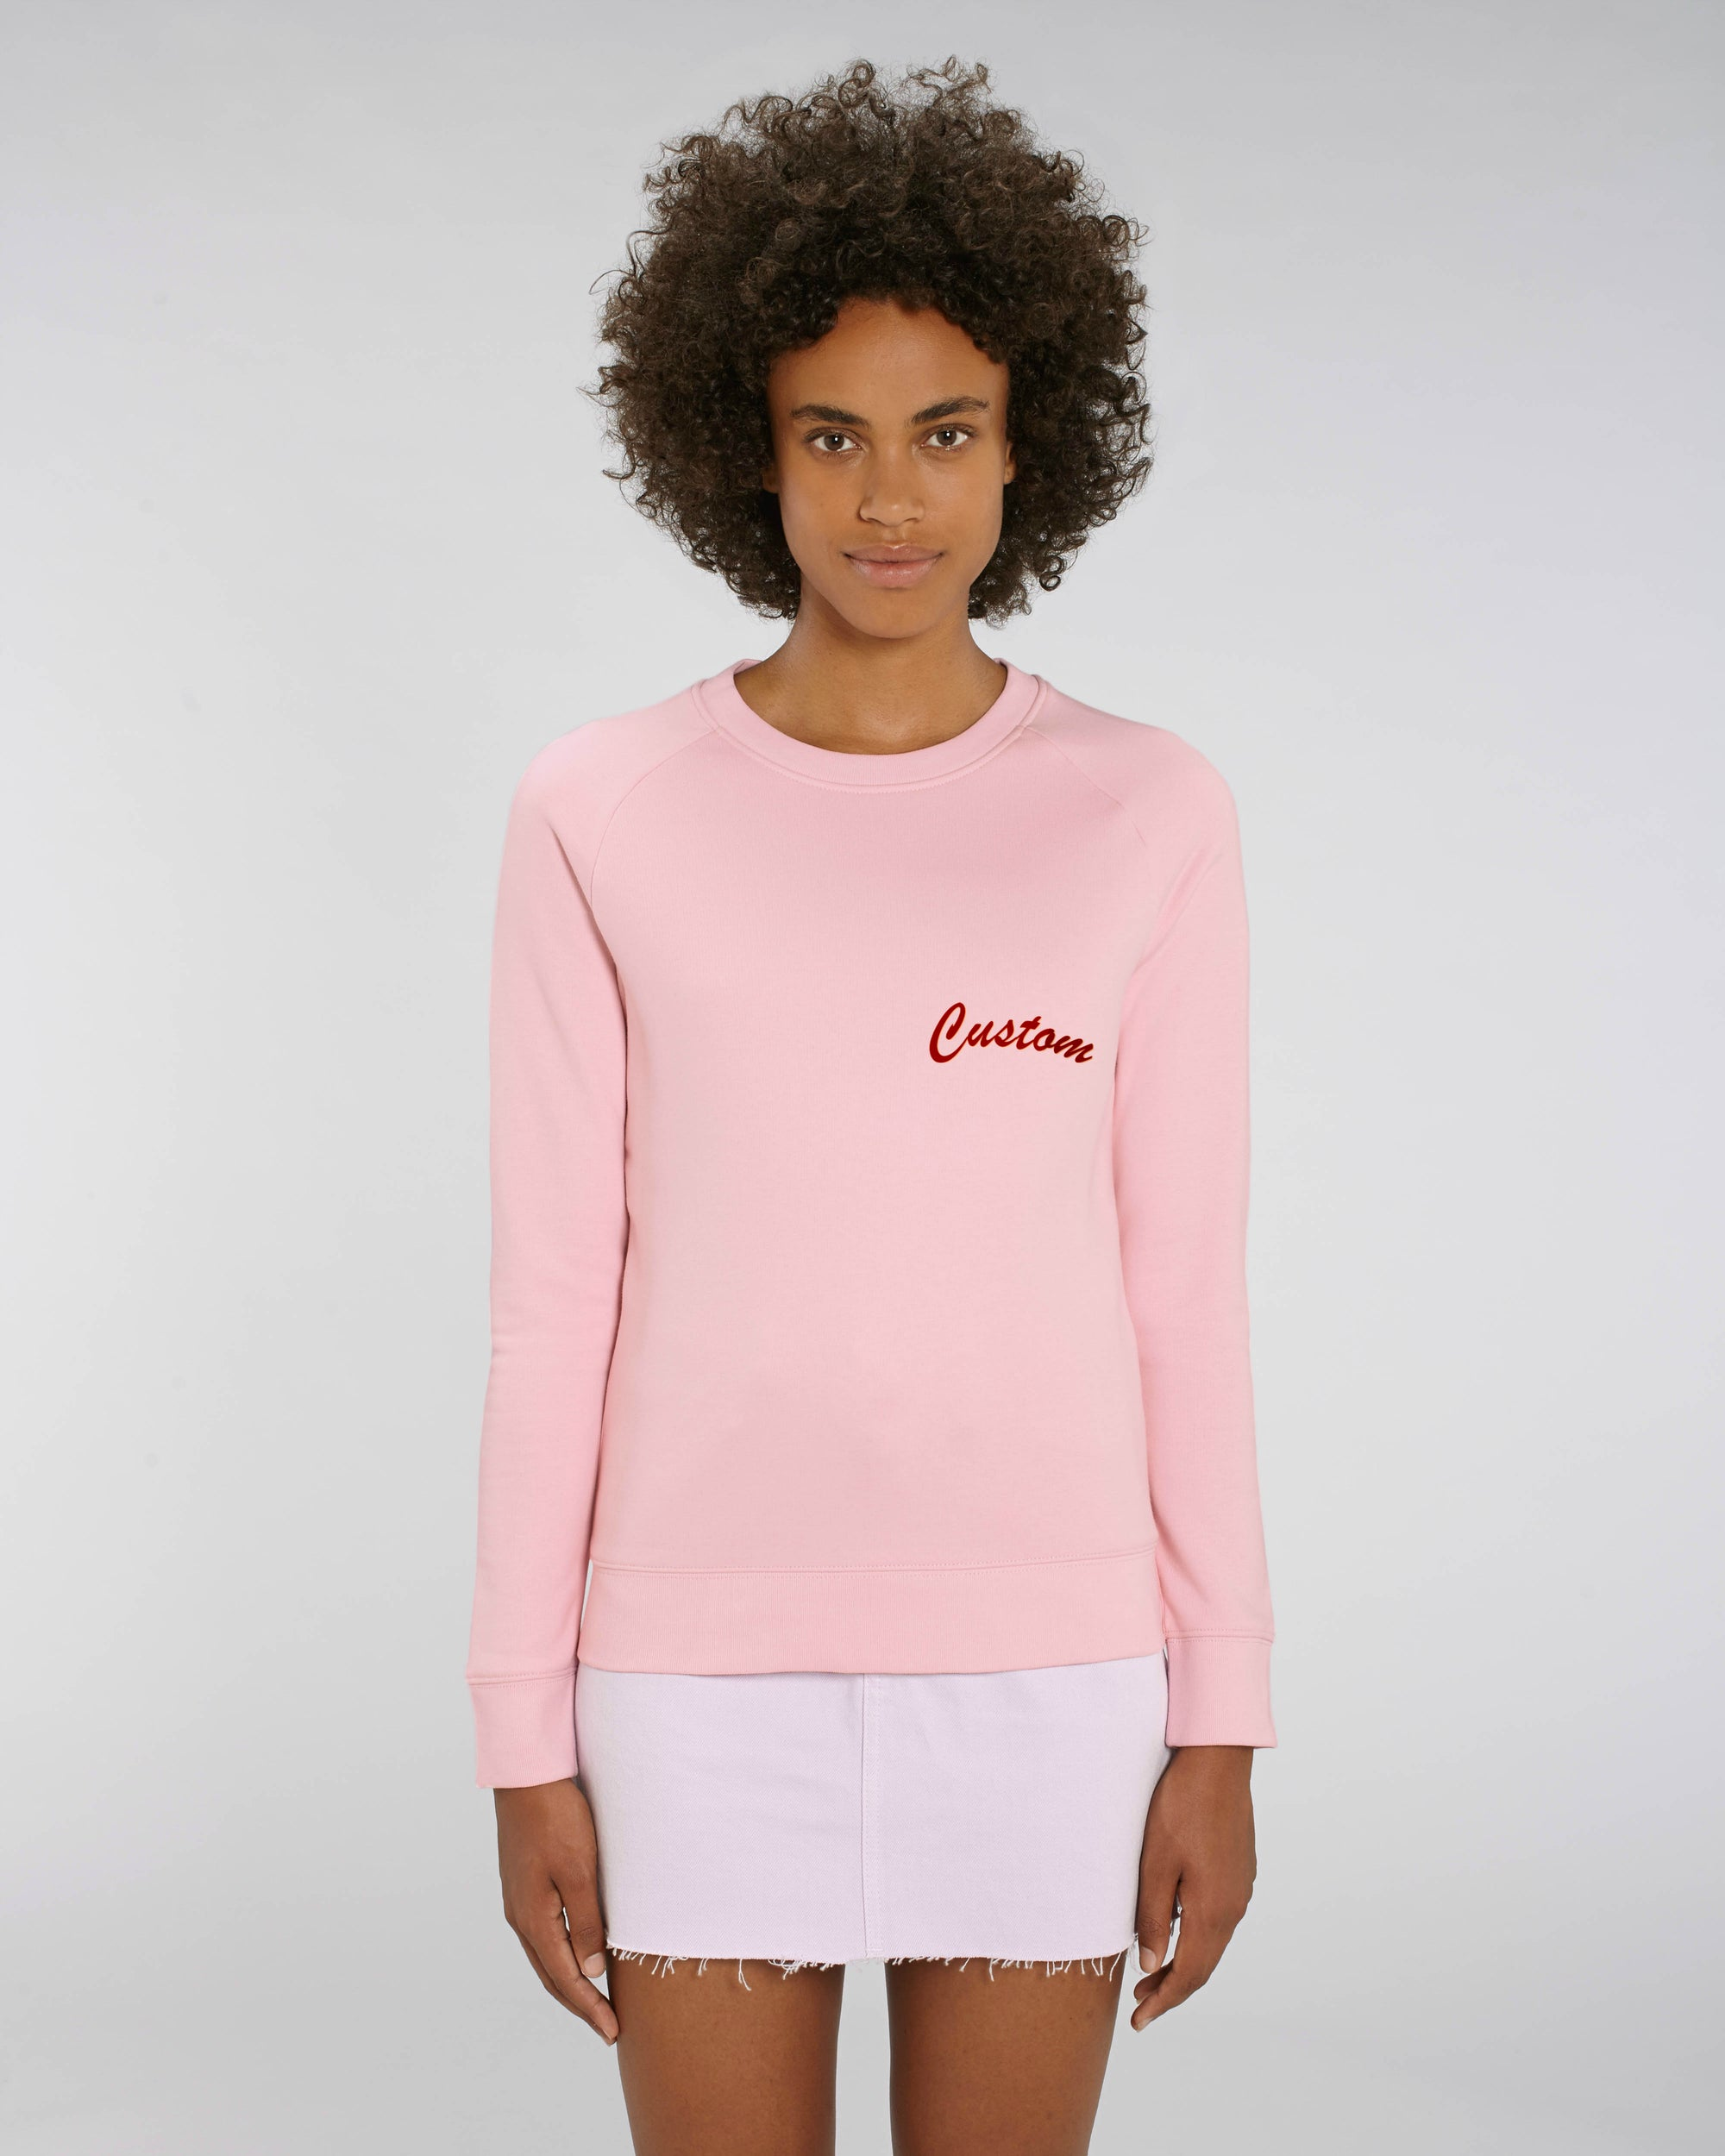 WOMEN'S ORGANIC COTTON CREW NECK TERRY 'TRIPSTER' SWEATSHIRT - customisable left chest embroidery